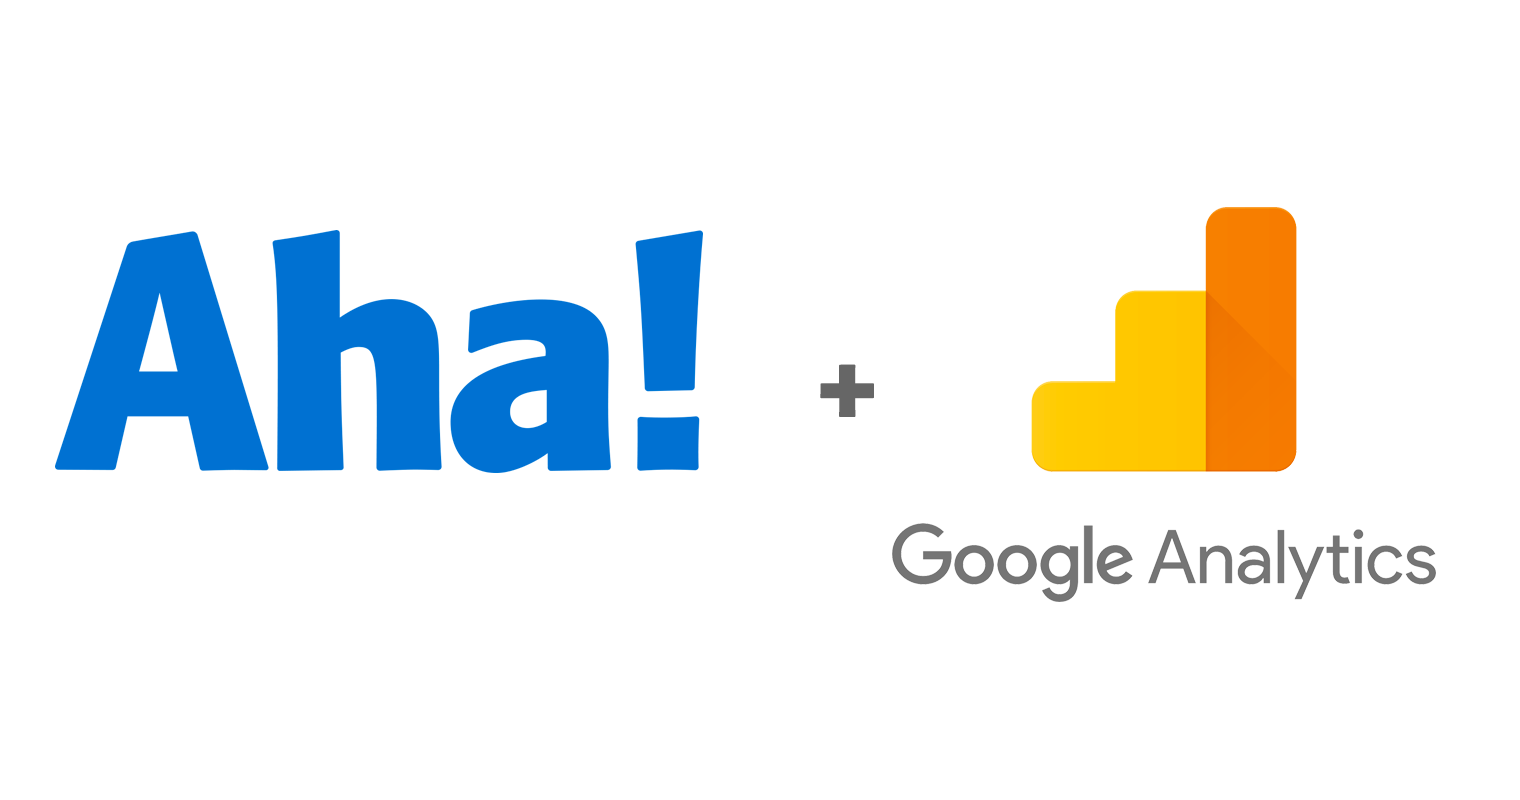 Aha ideas portal and google analytics logo